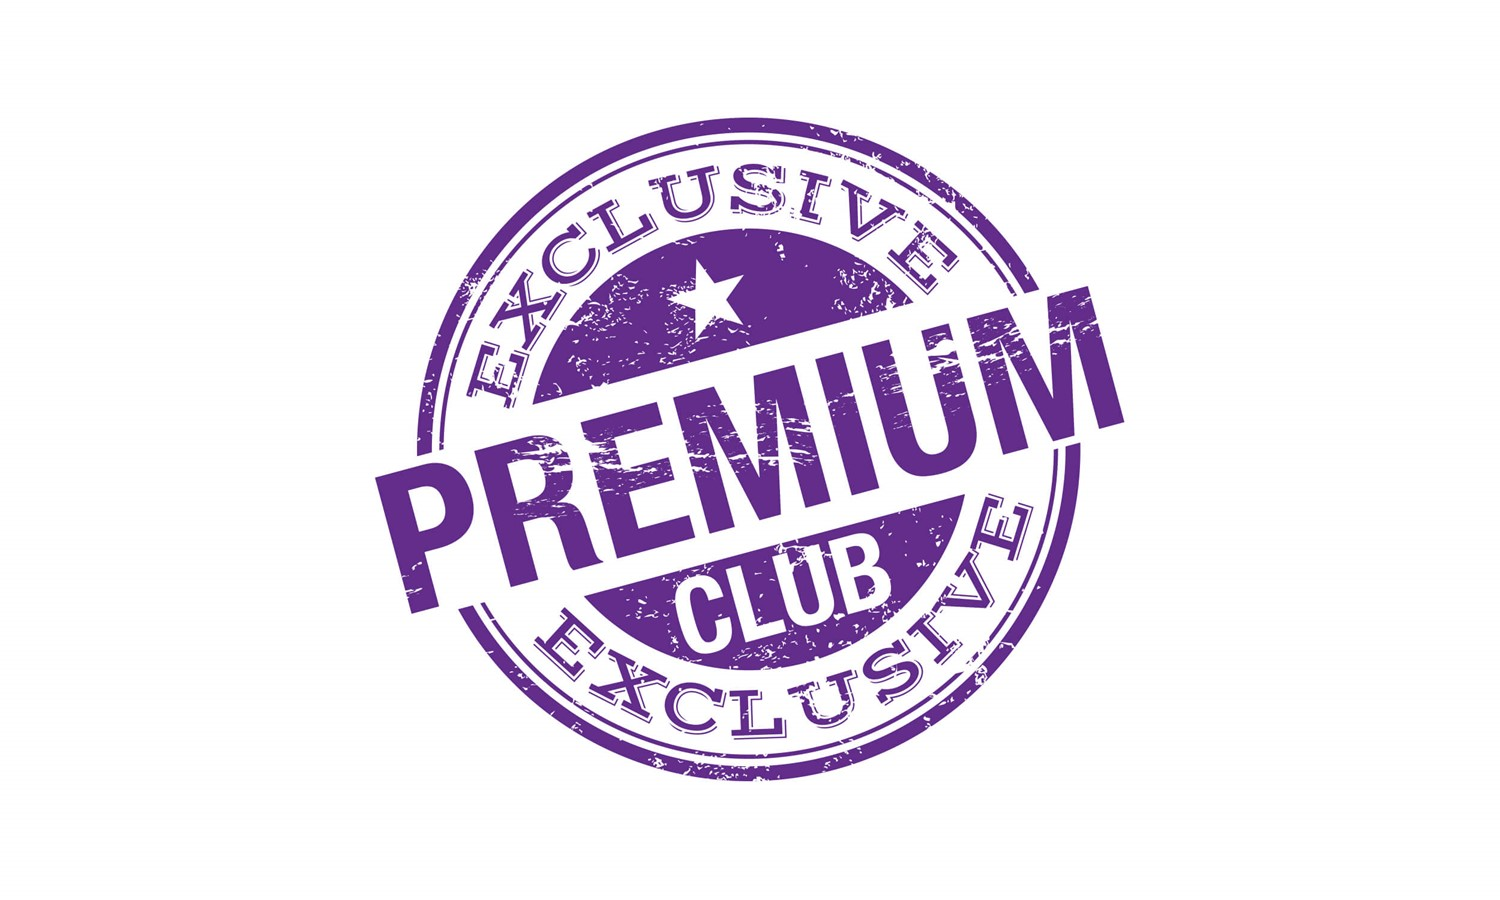 KAE Exclusive Premium Club